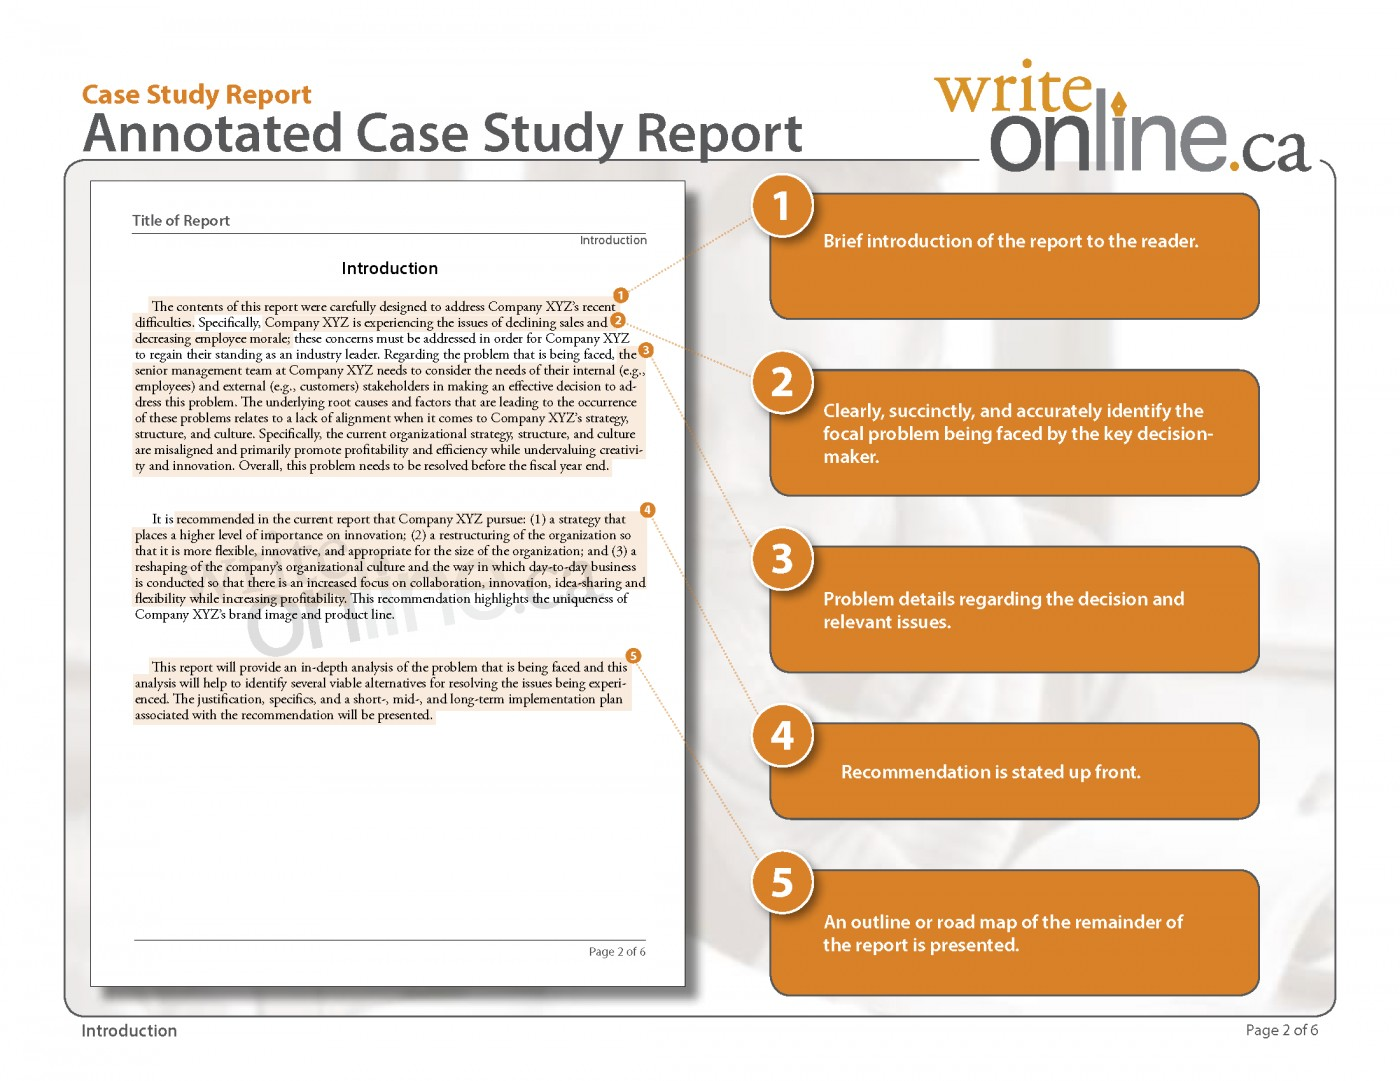 008 Casestudy Annotatedfull Page 2 Parts Of Research Paper Wonderful A Introduction 1400